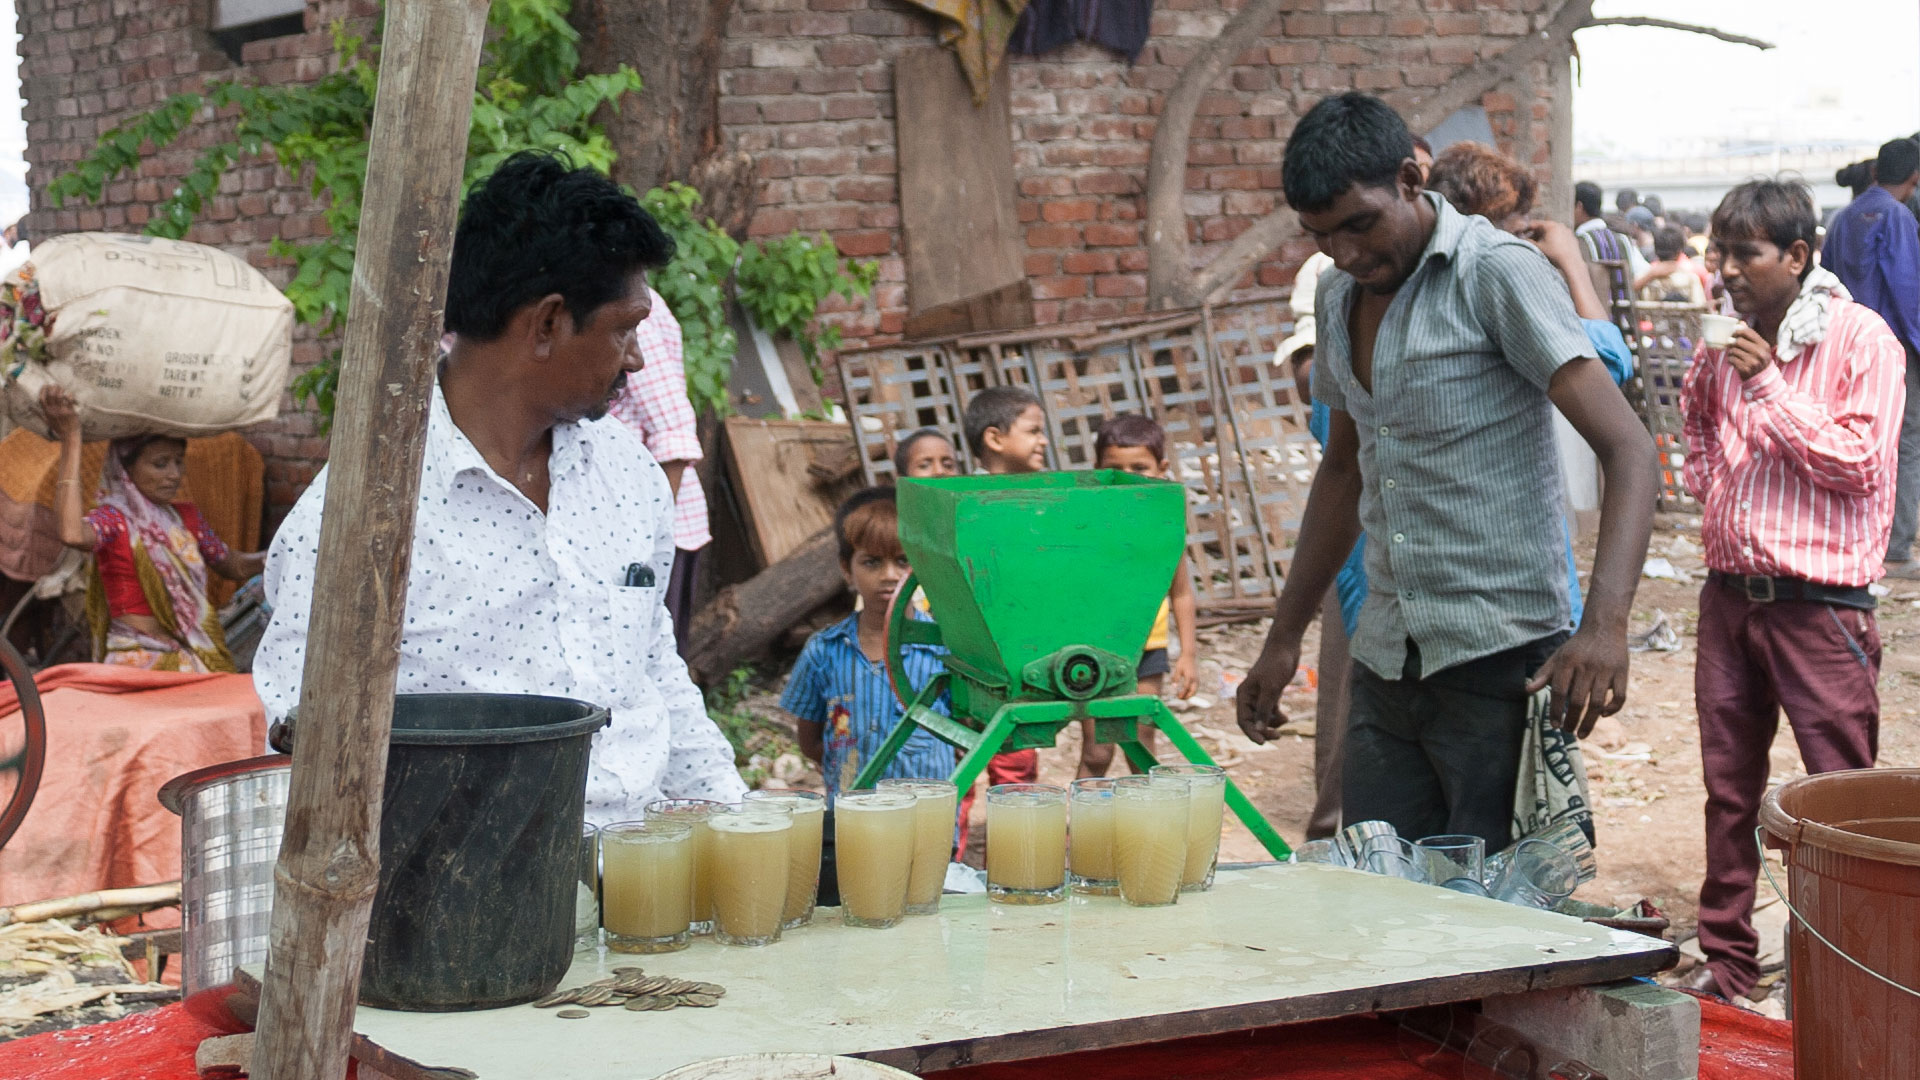 Sugar cane juice at Ravivari Market in Ahmedabad